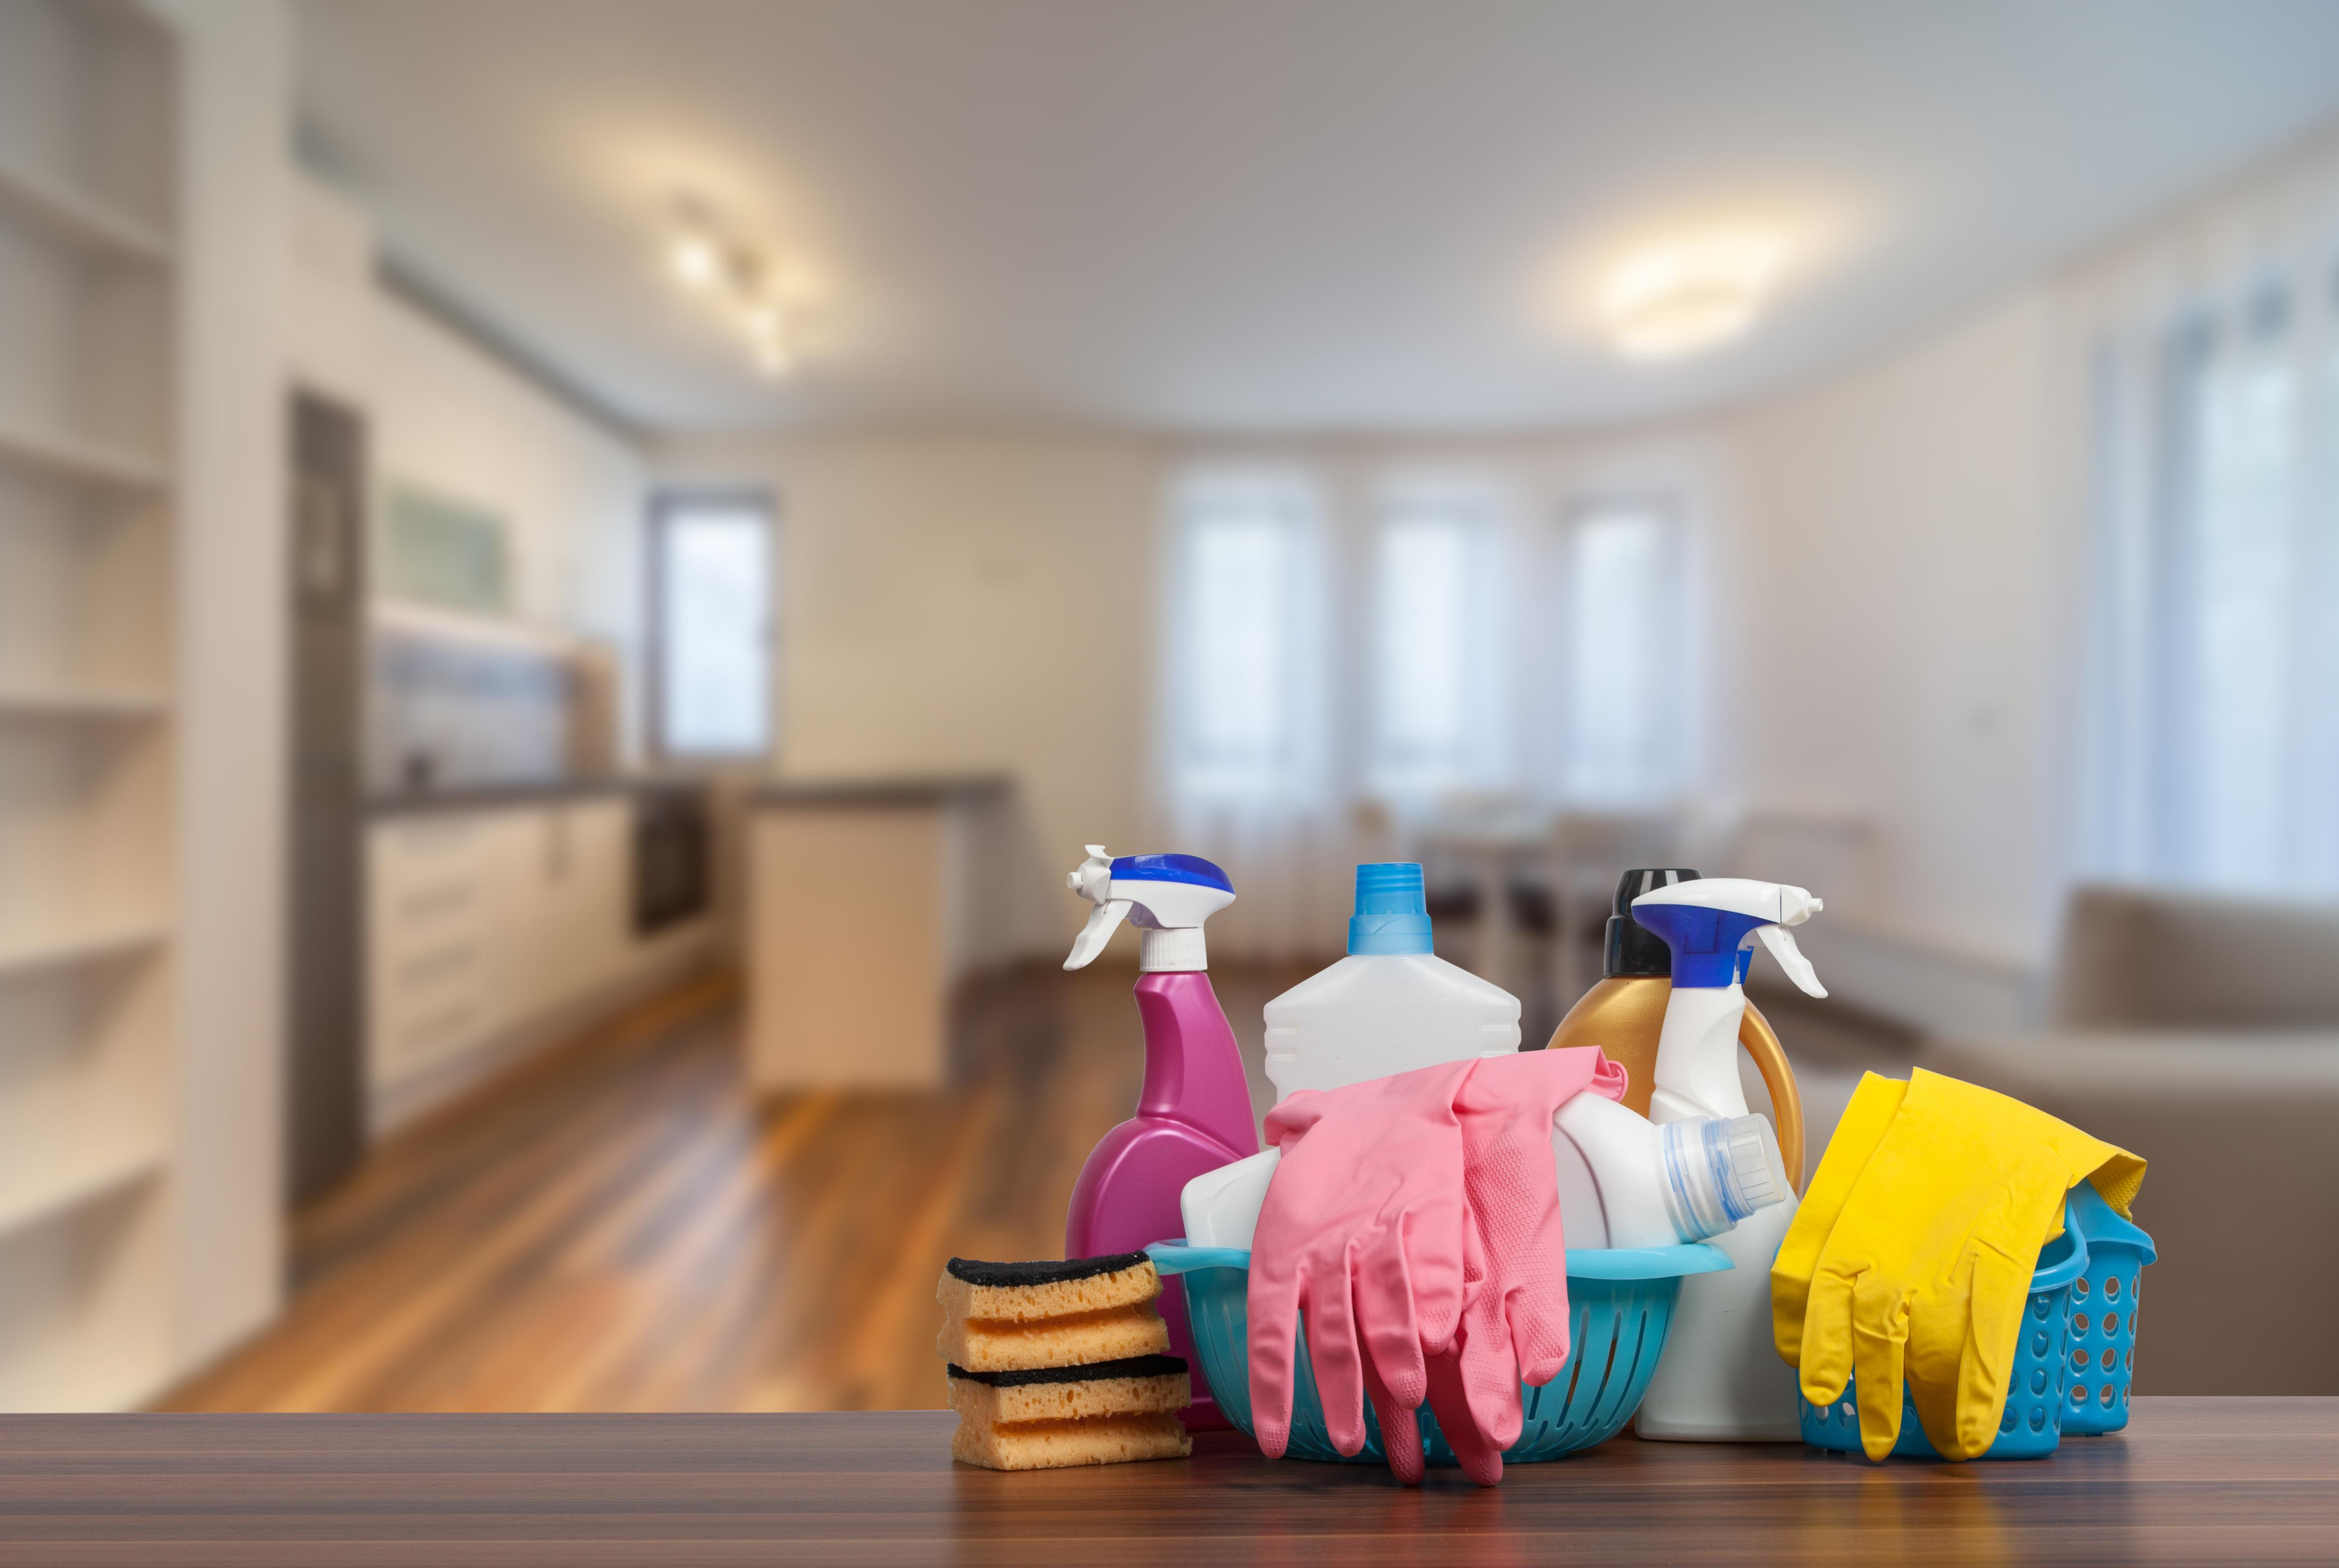 House Cleaning Services in Enfield